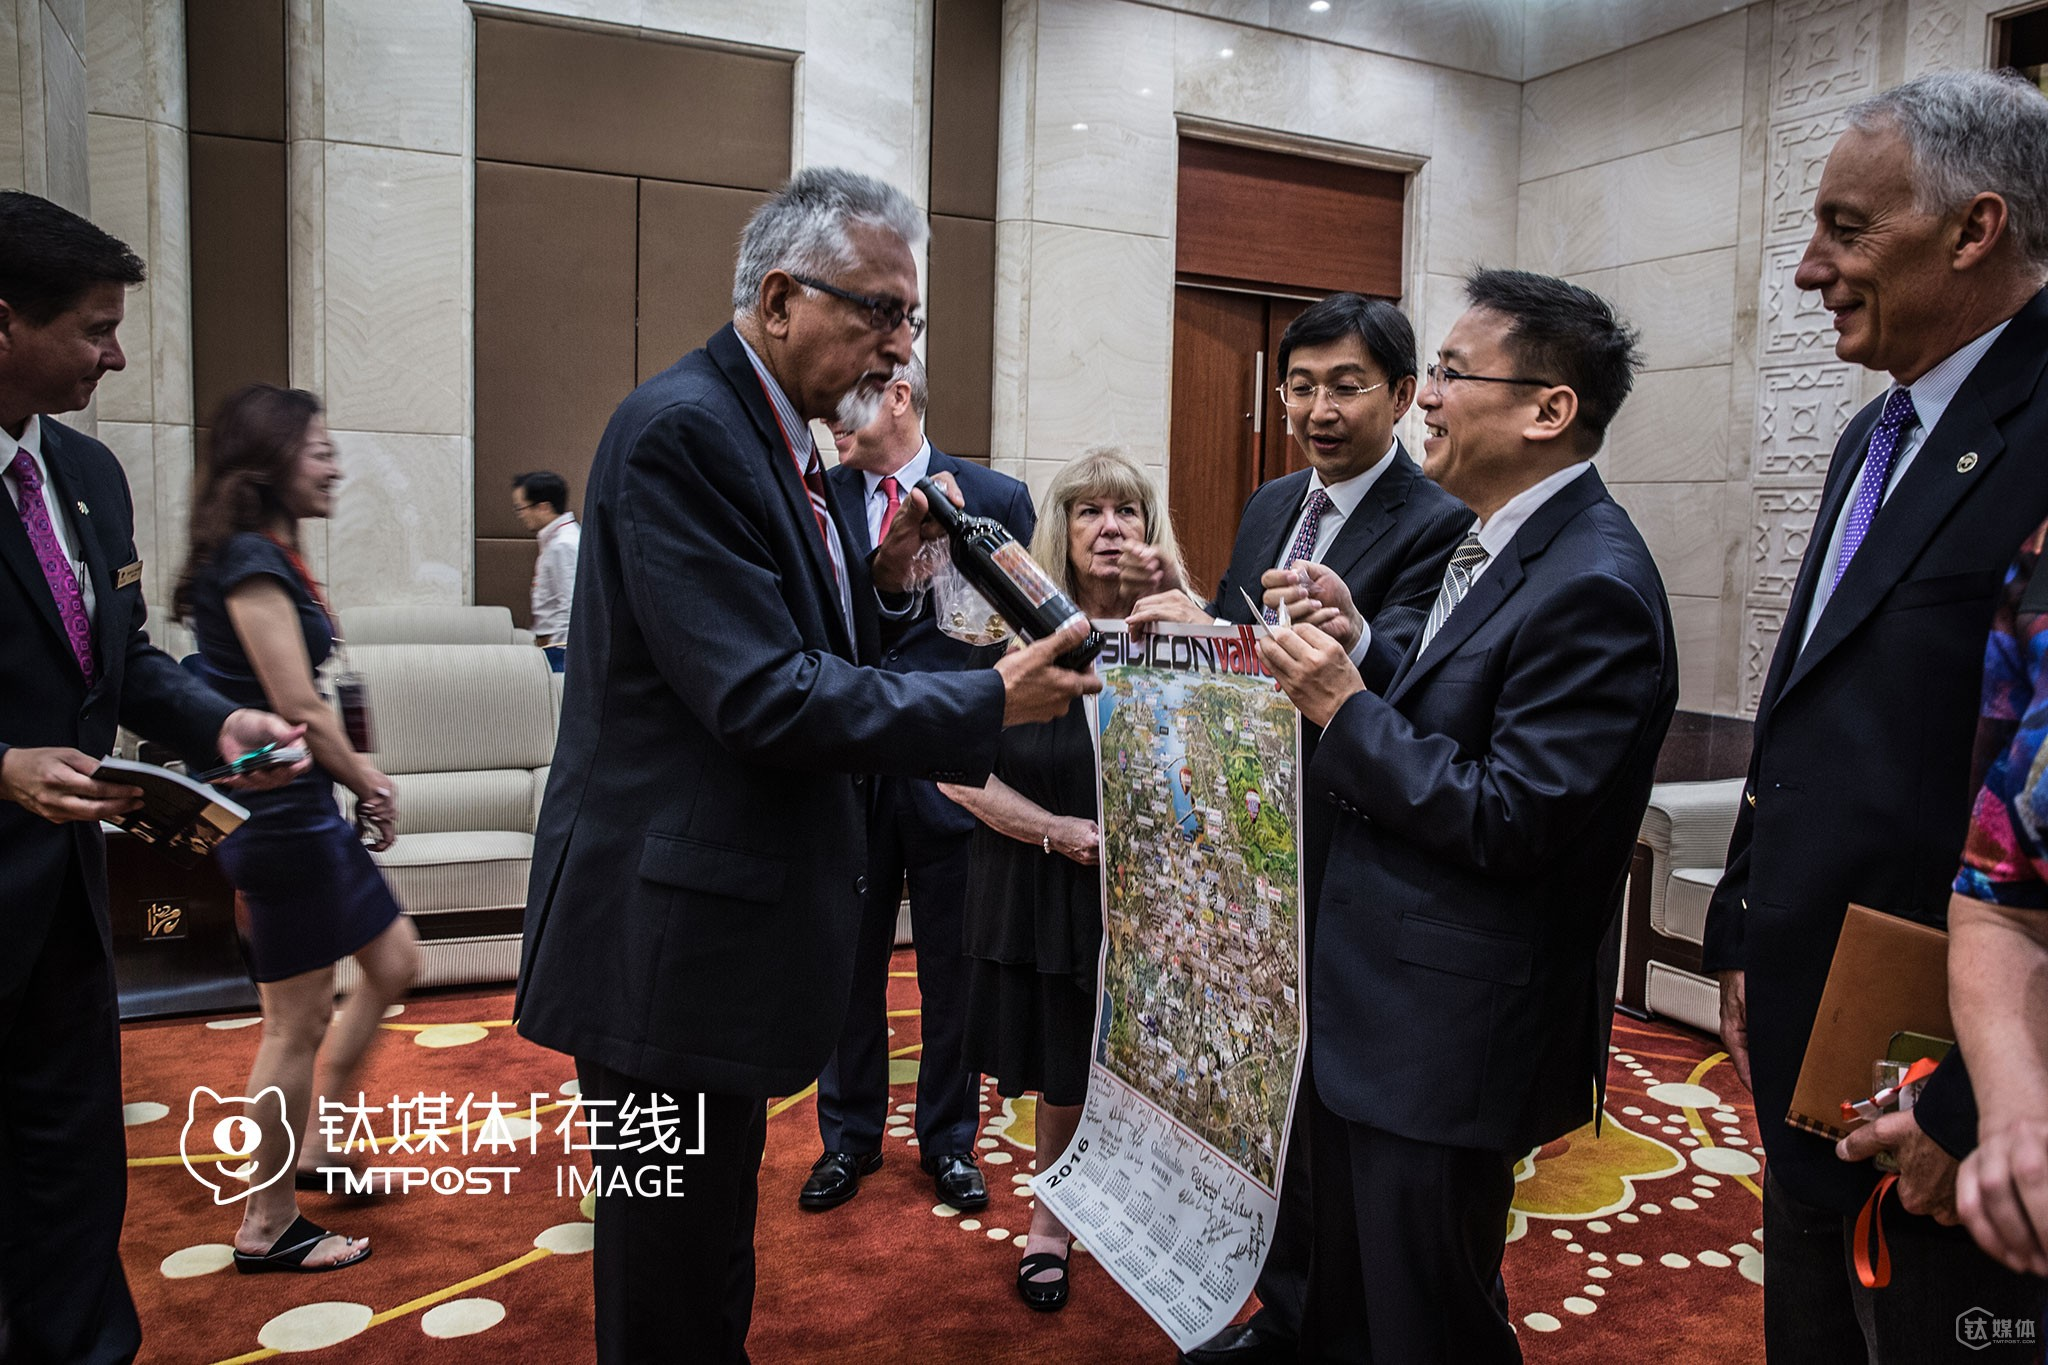 """Before the VR summit in Chongqing began, Mu Huaping, District party secetary of Yubei District, met with the delegation. After the meeting, Silicon Valley mayors gave some gifts to Mr. Mu, including city emblems, souvenirs, red wine, etc. A day before the meeting, a Silicon Valley mayor asked the interpreter: """"Does party secretaries have more power than mayors and vice mayors in China?"""" He'd met party secretaries of some local Chinese government on study tours in the US, but wasn't quite sure of how power was divided in the Chinese political system."""